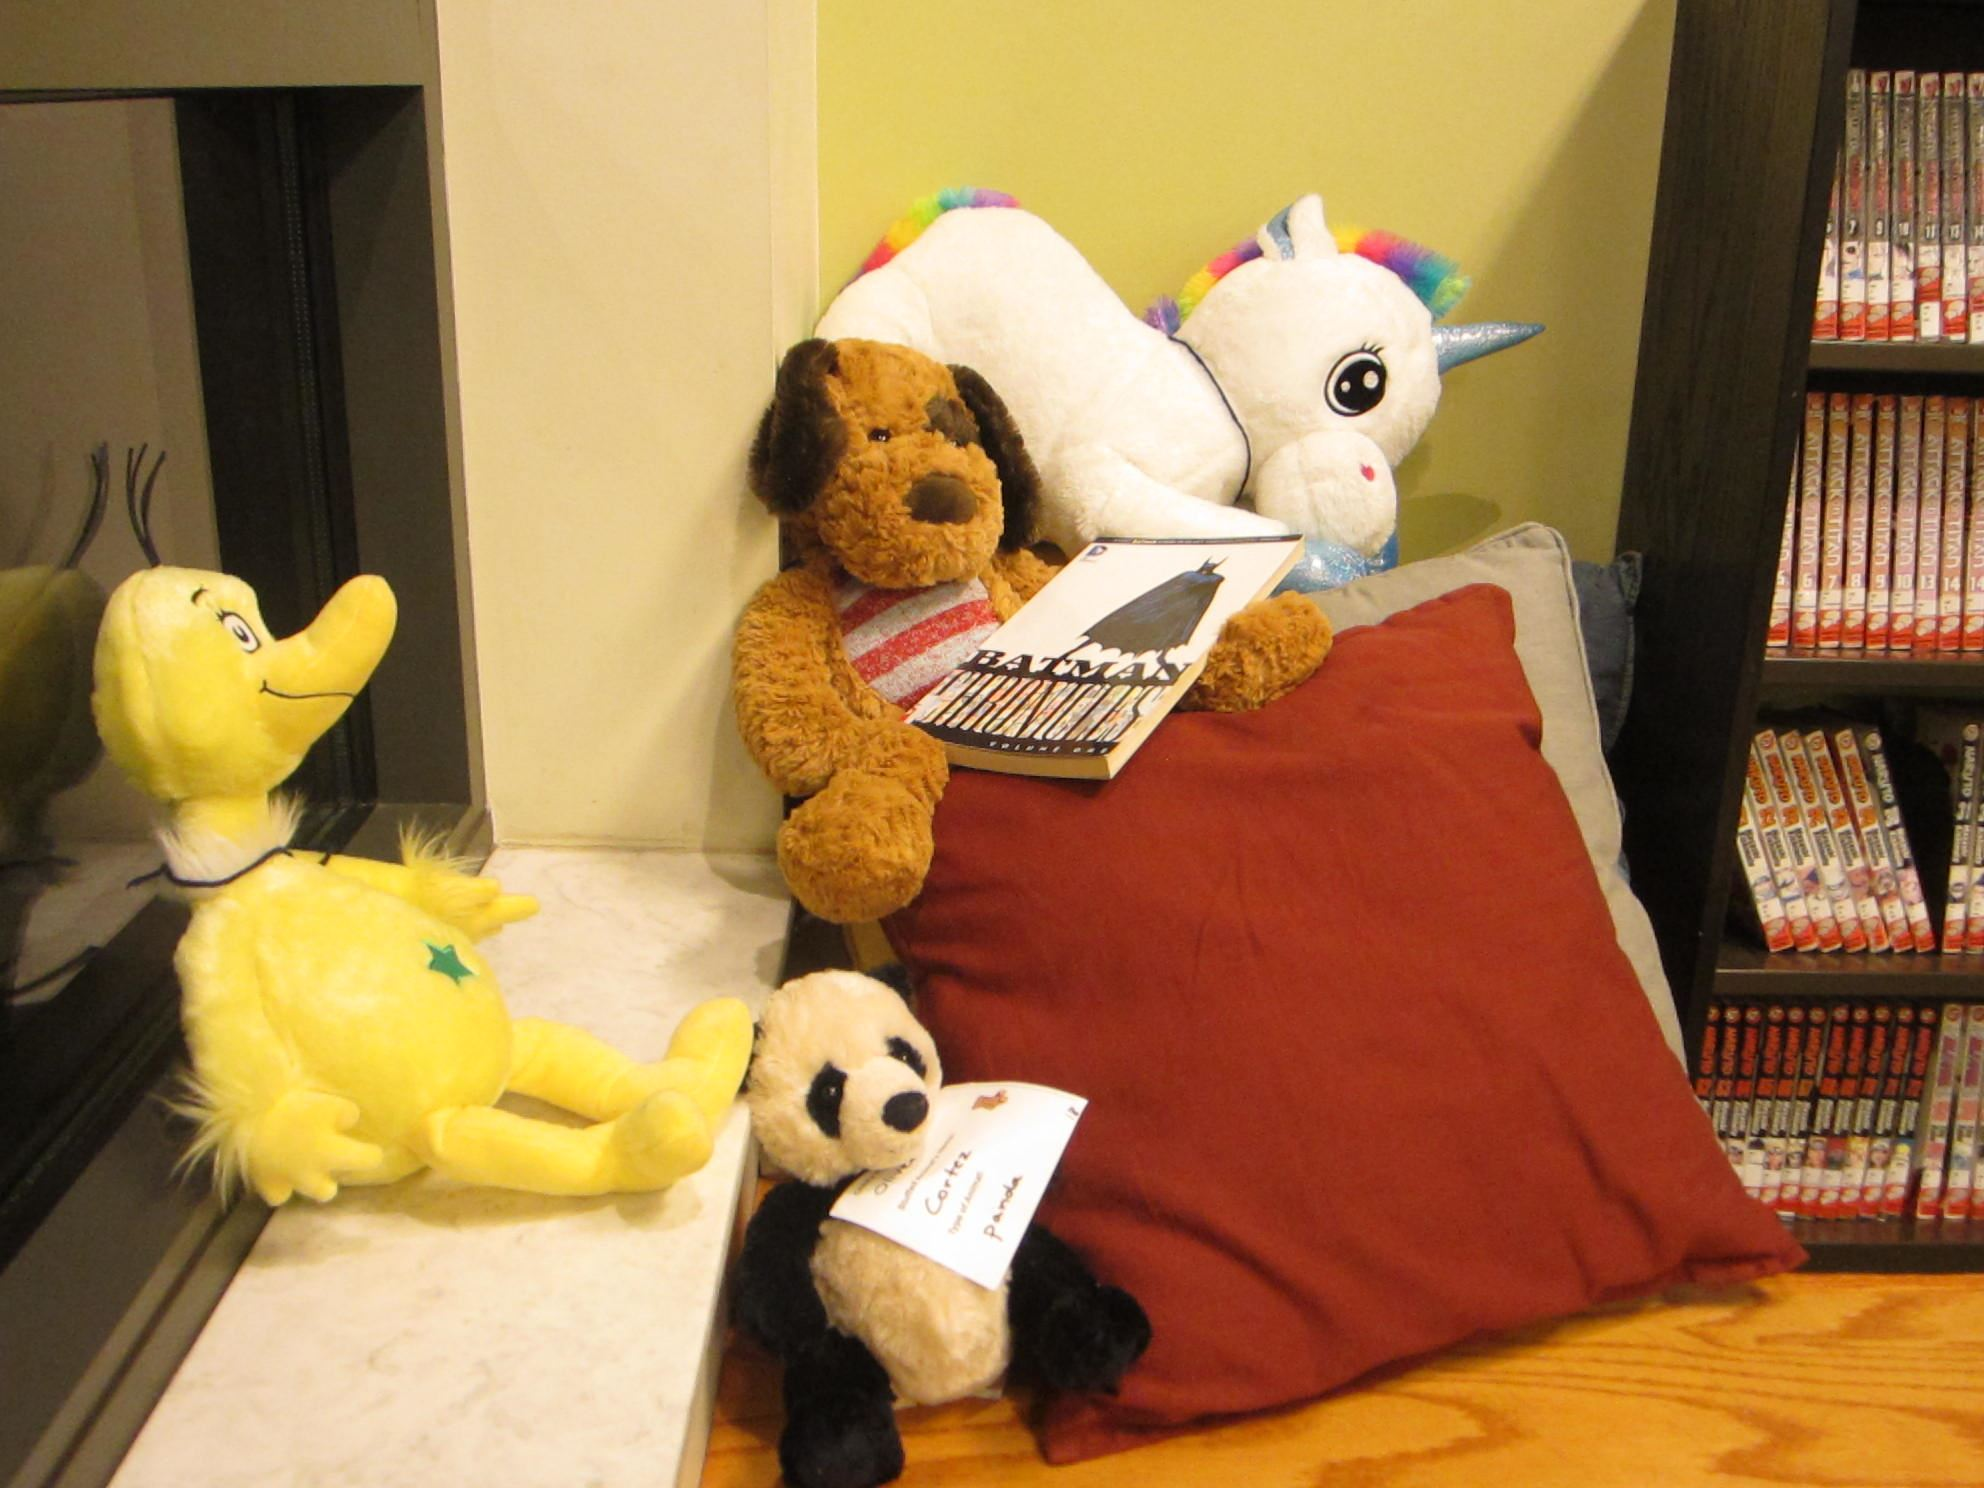 Stuffed animal sleepover 155